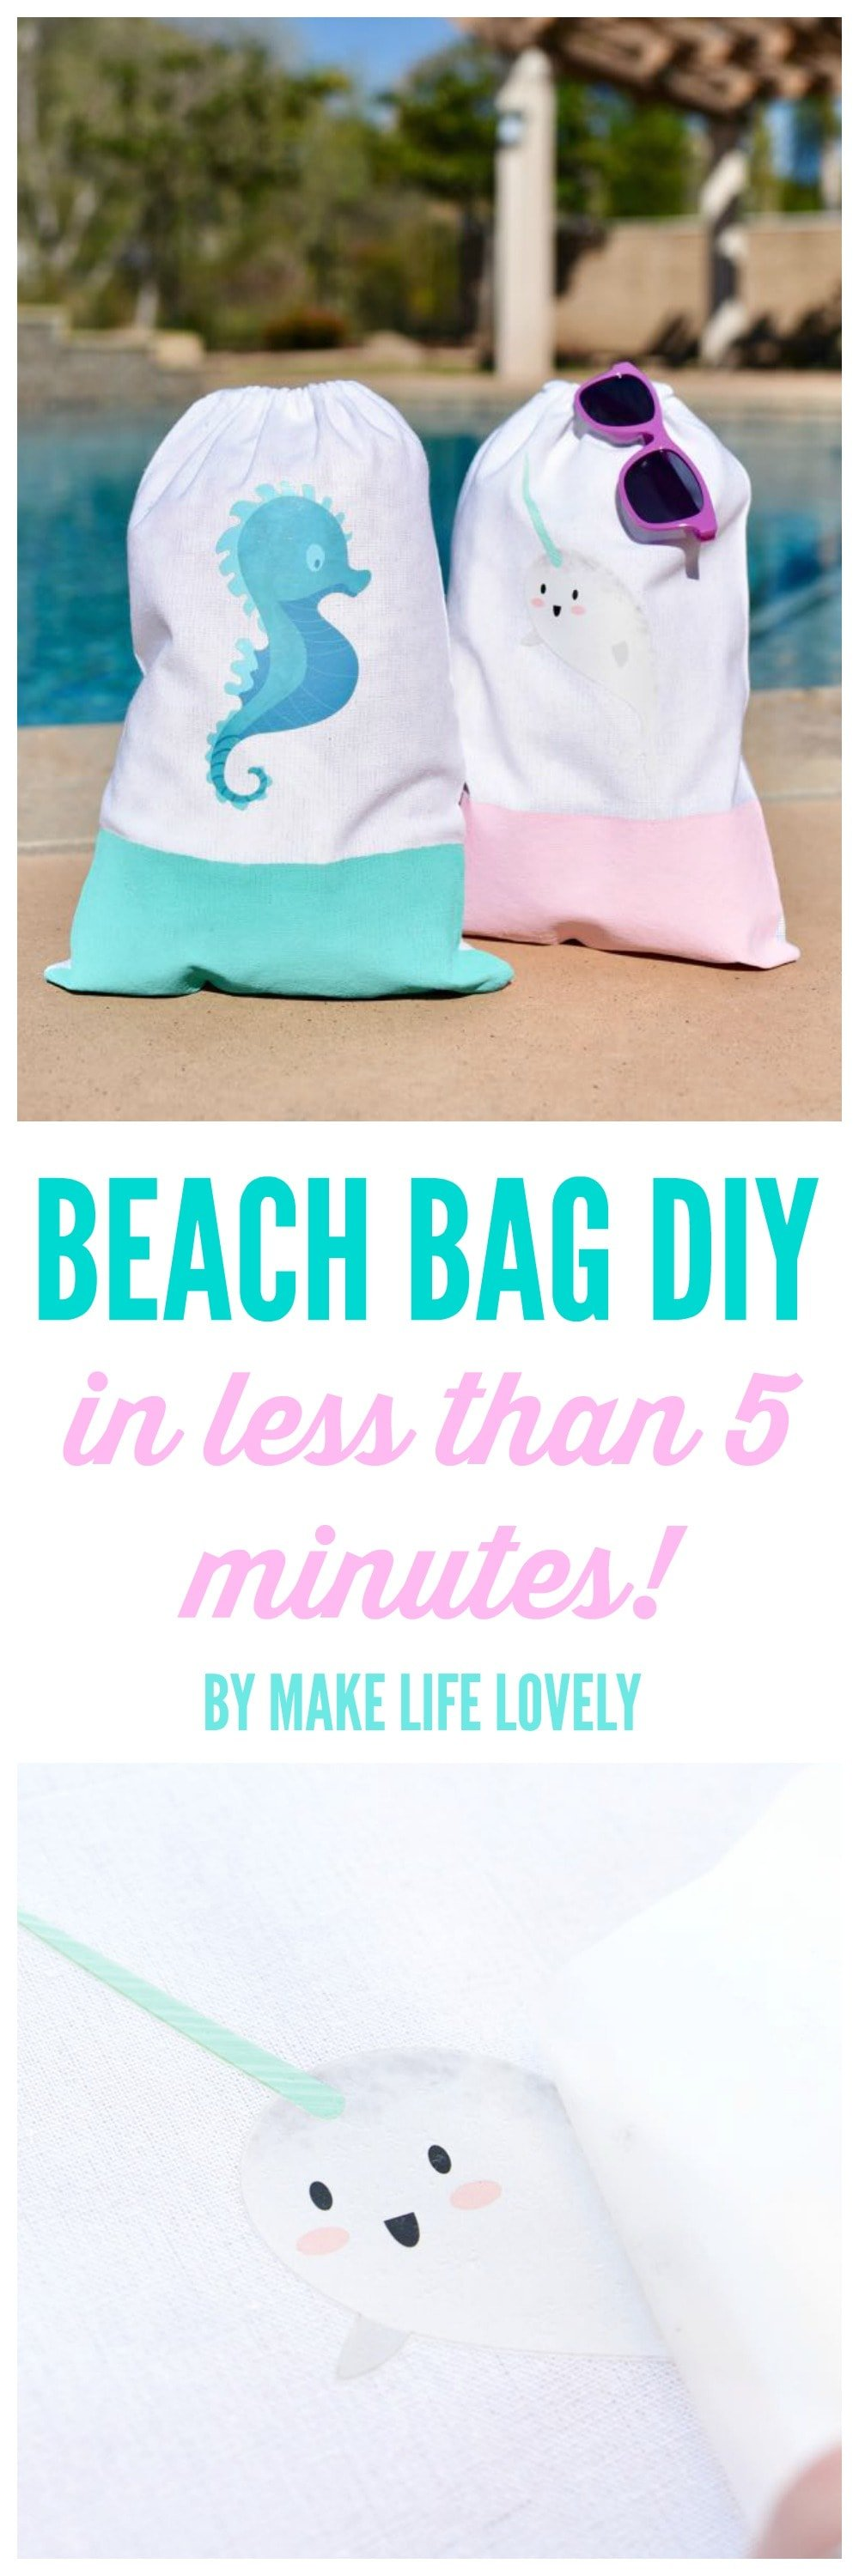 Beach Bag DIY With Cricut In Under 5 Minutes... Really